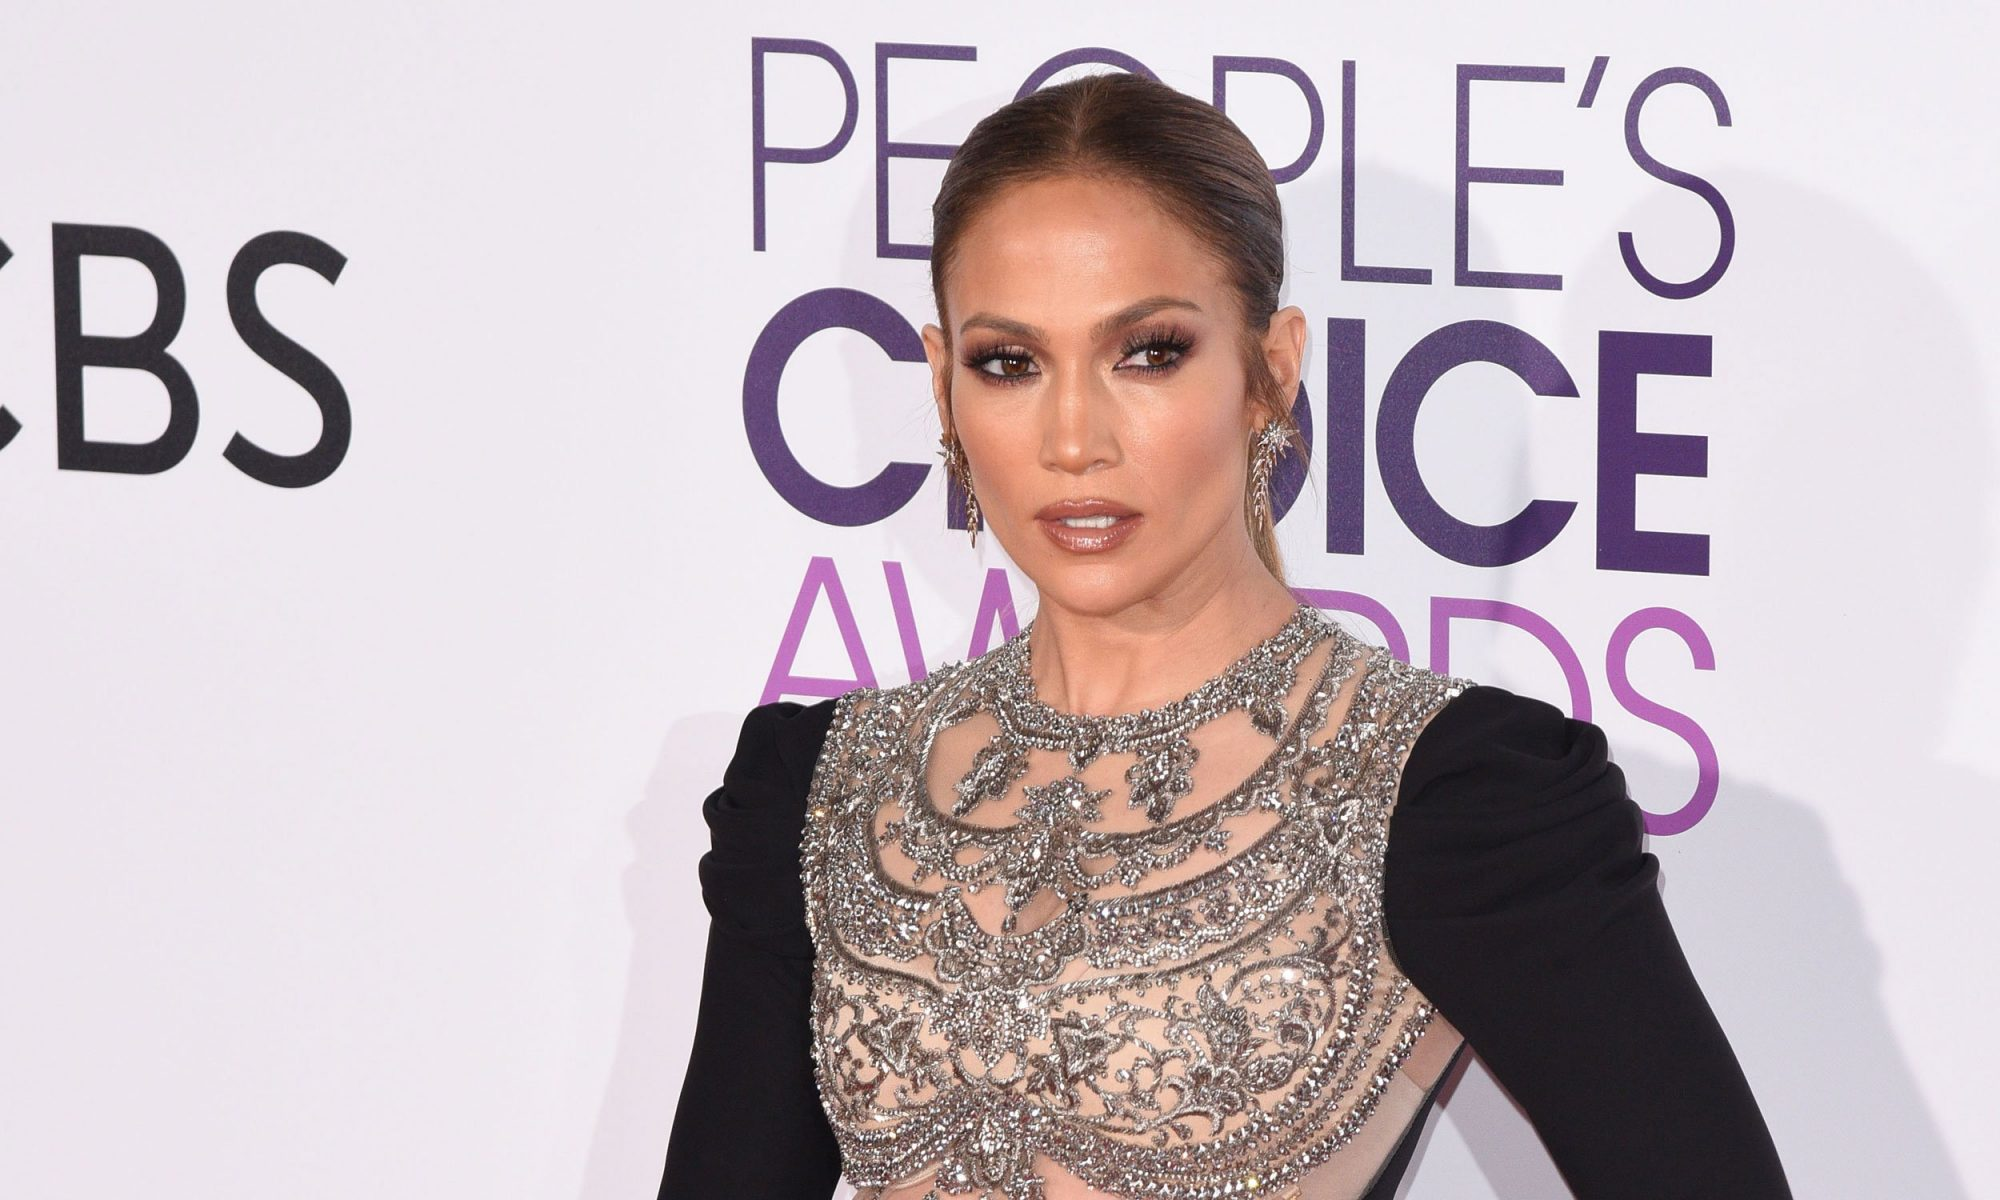 EC: What Jennifer Lopez Never Drinks